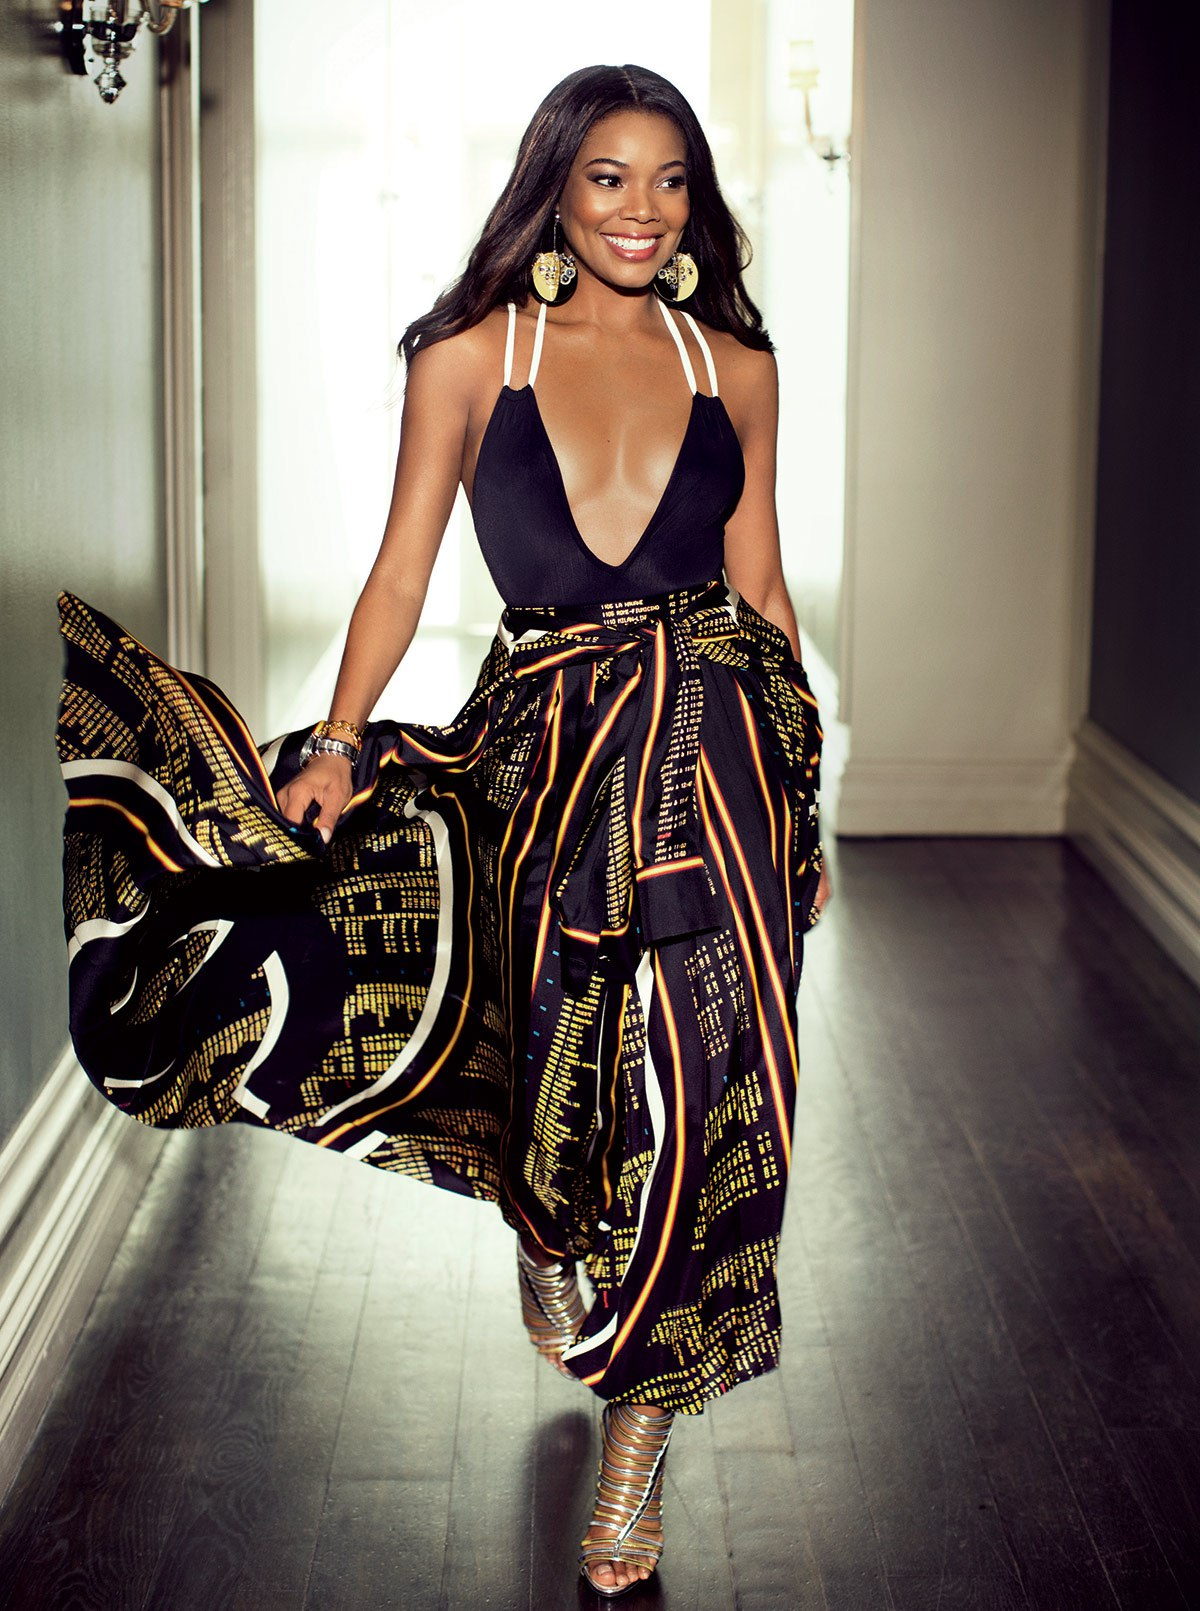 Gabrielle Union Hacked Pics - Fappening Sauce-1516